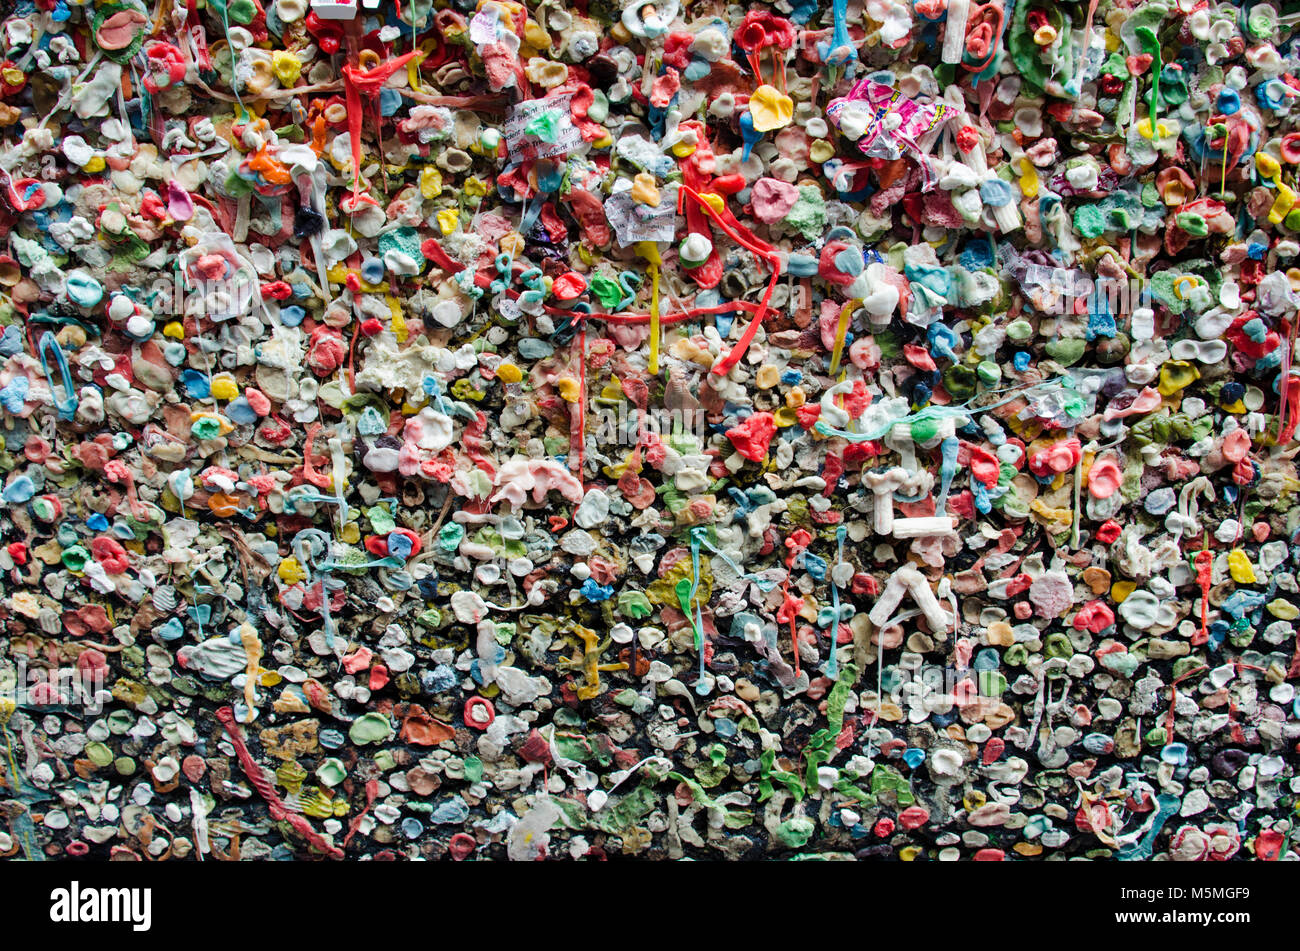 Gum wall under Pikes Market in Seattle, WA - Stock Image